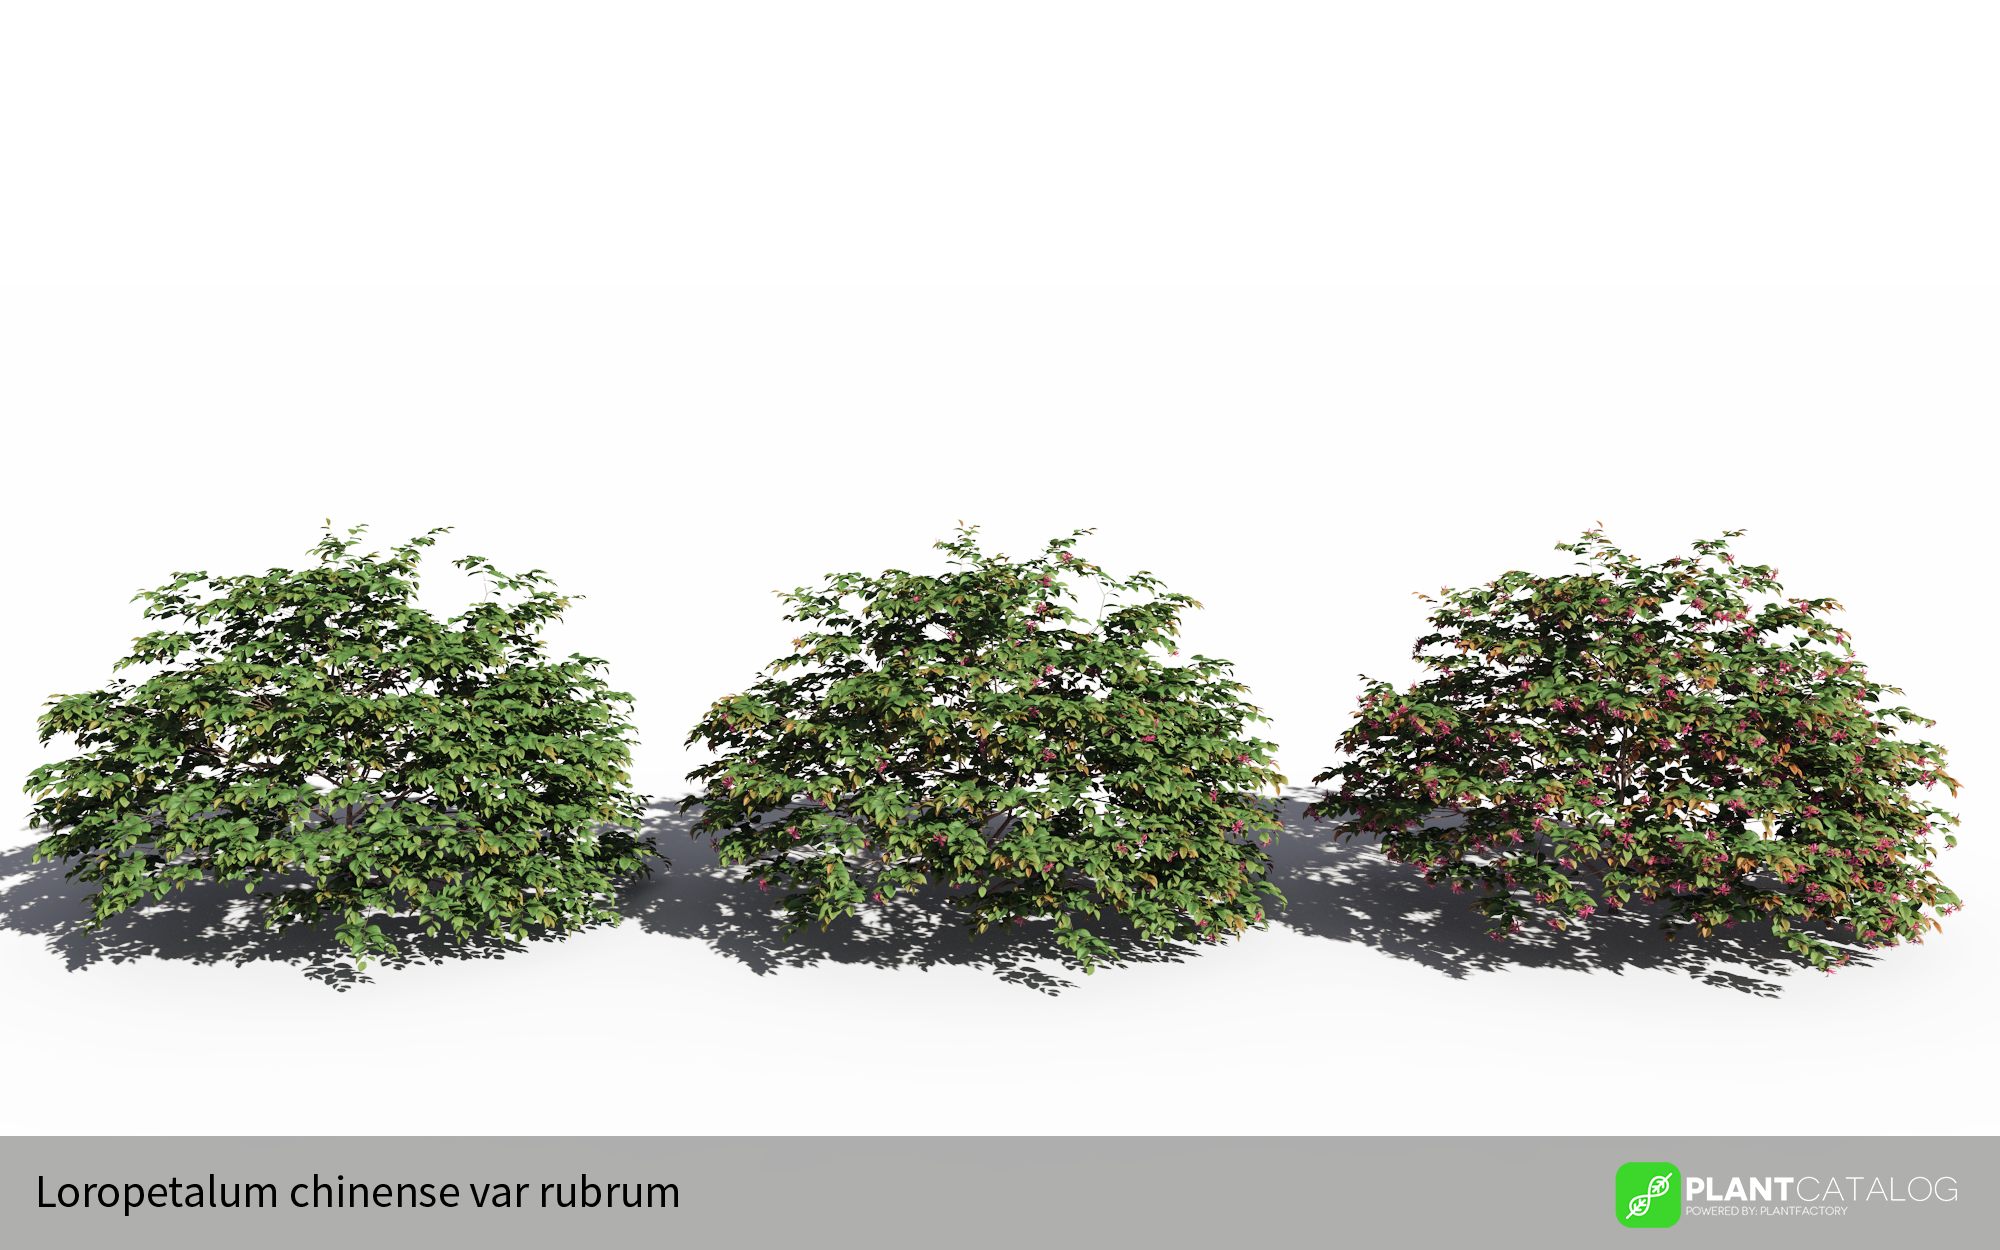 3D model of the Chinese fringe flower - Loropetalum chinense var rubrum - from the PlantCatalog, rendered in VUE